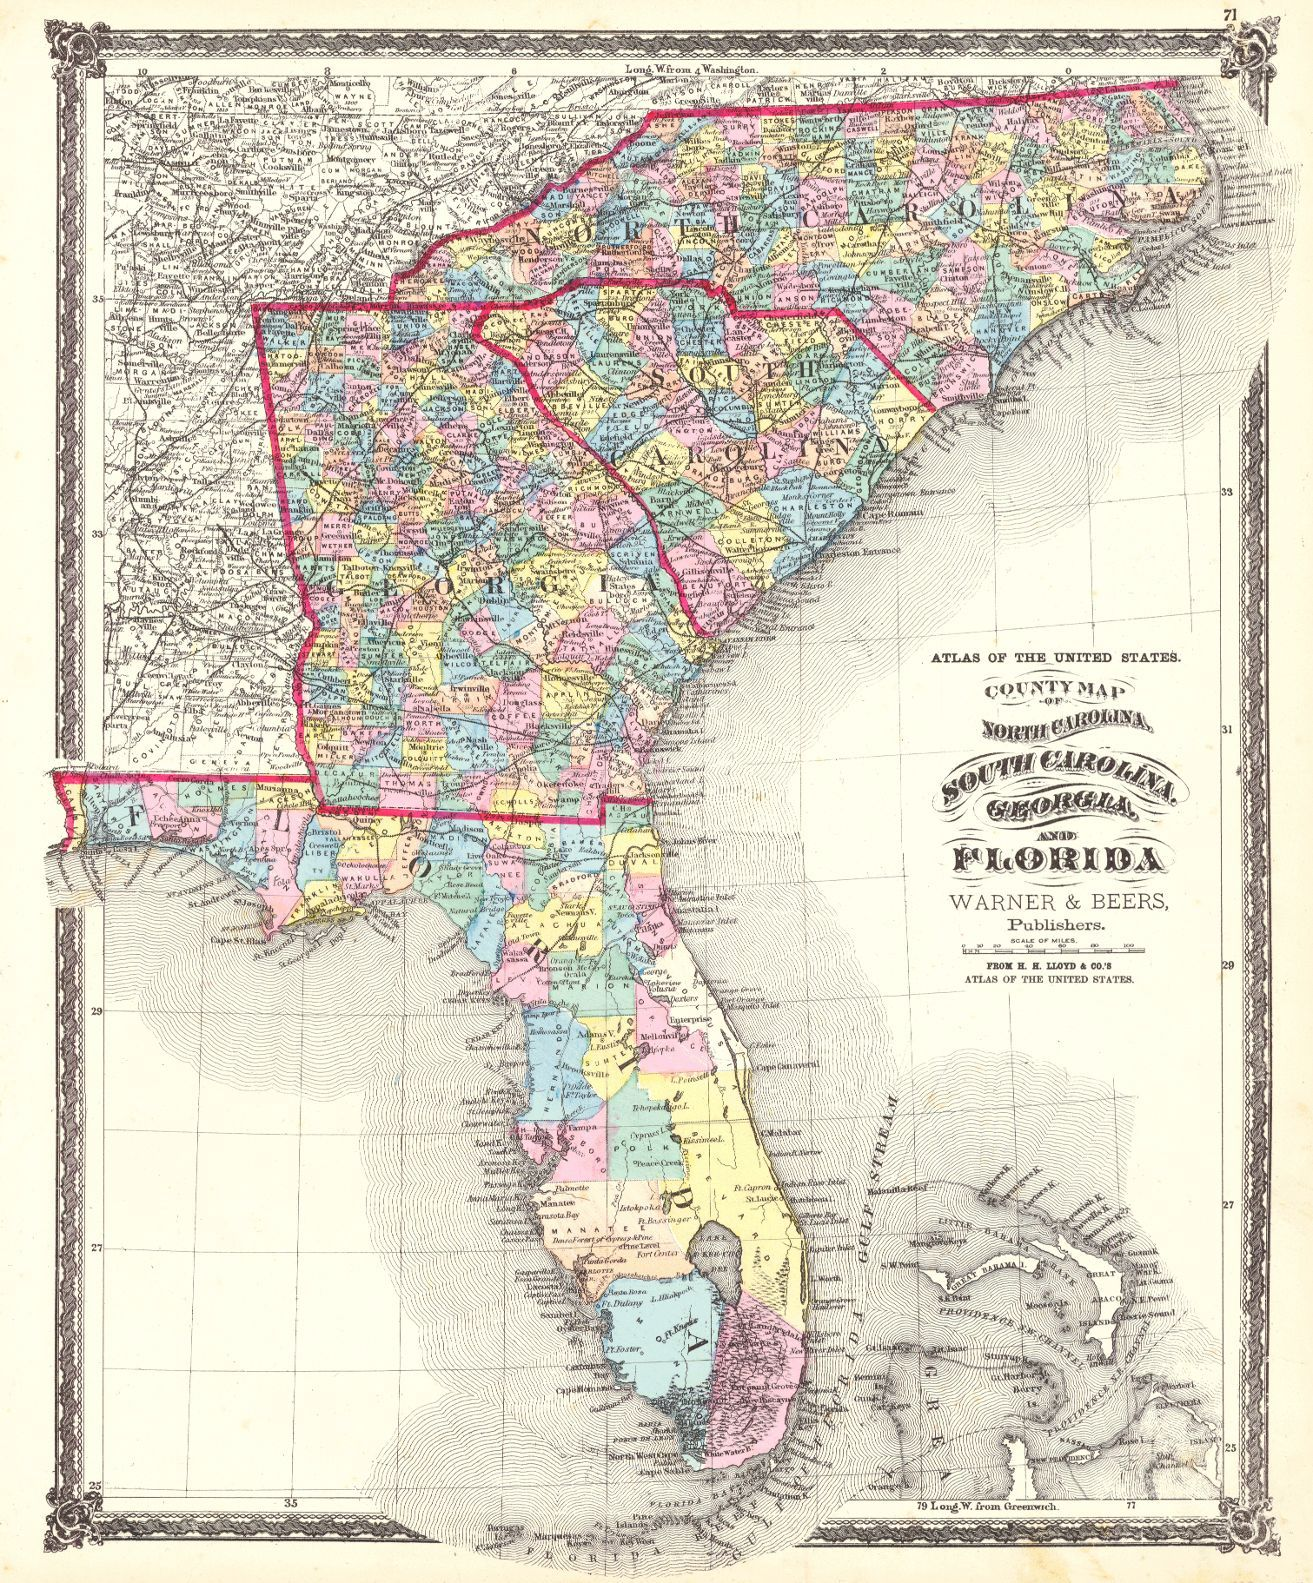 Atlas Of The United States County Map Of North Carolina South - North carolina on a us map